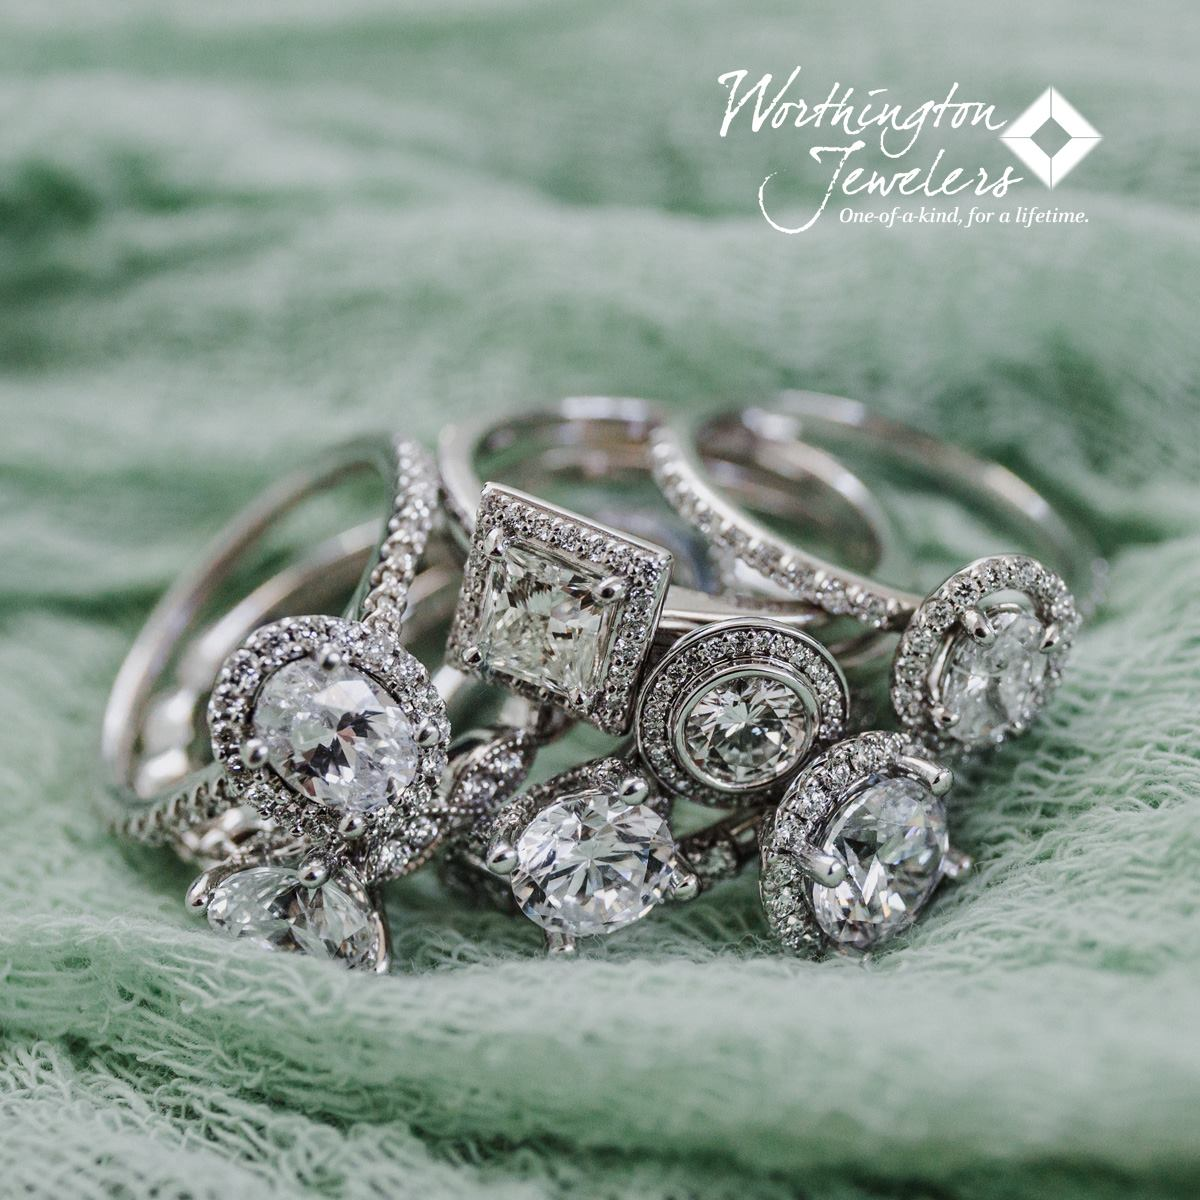 Worthington Jewelers Bridal Jewelry Package - One grand prize winner will win a 1.06 carat diamond valued at $6,000 and a $2,500 Worthington Jewelers gift certificate to use for a custom setting, bridal jewelry, custom wedding bands, or however the winner chooses. Total prize valued at $8,500.